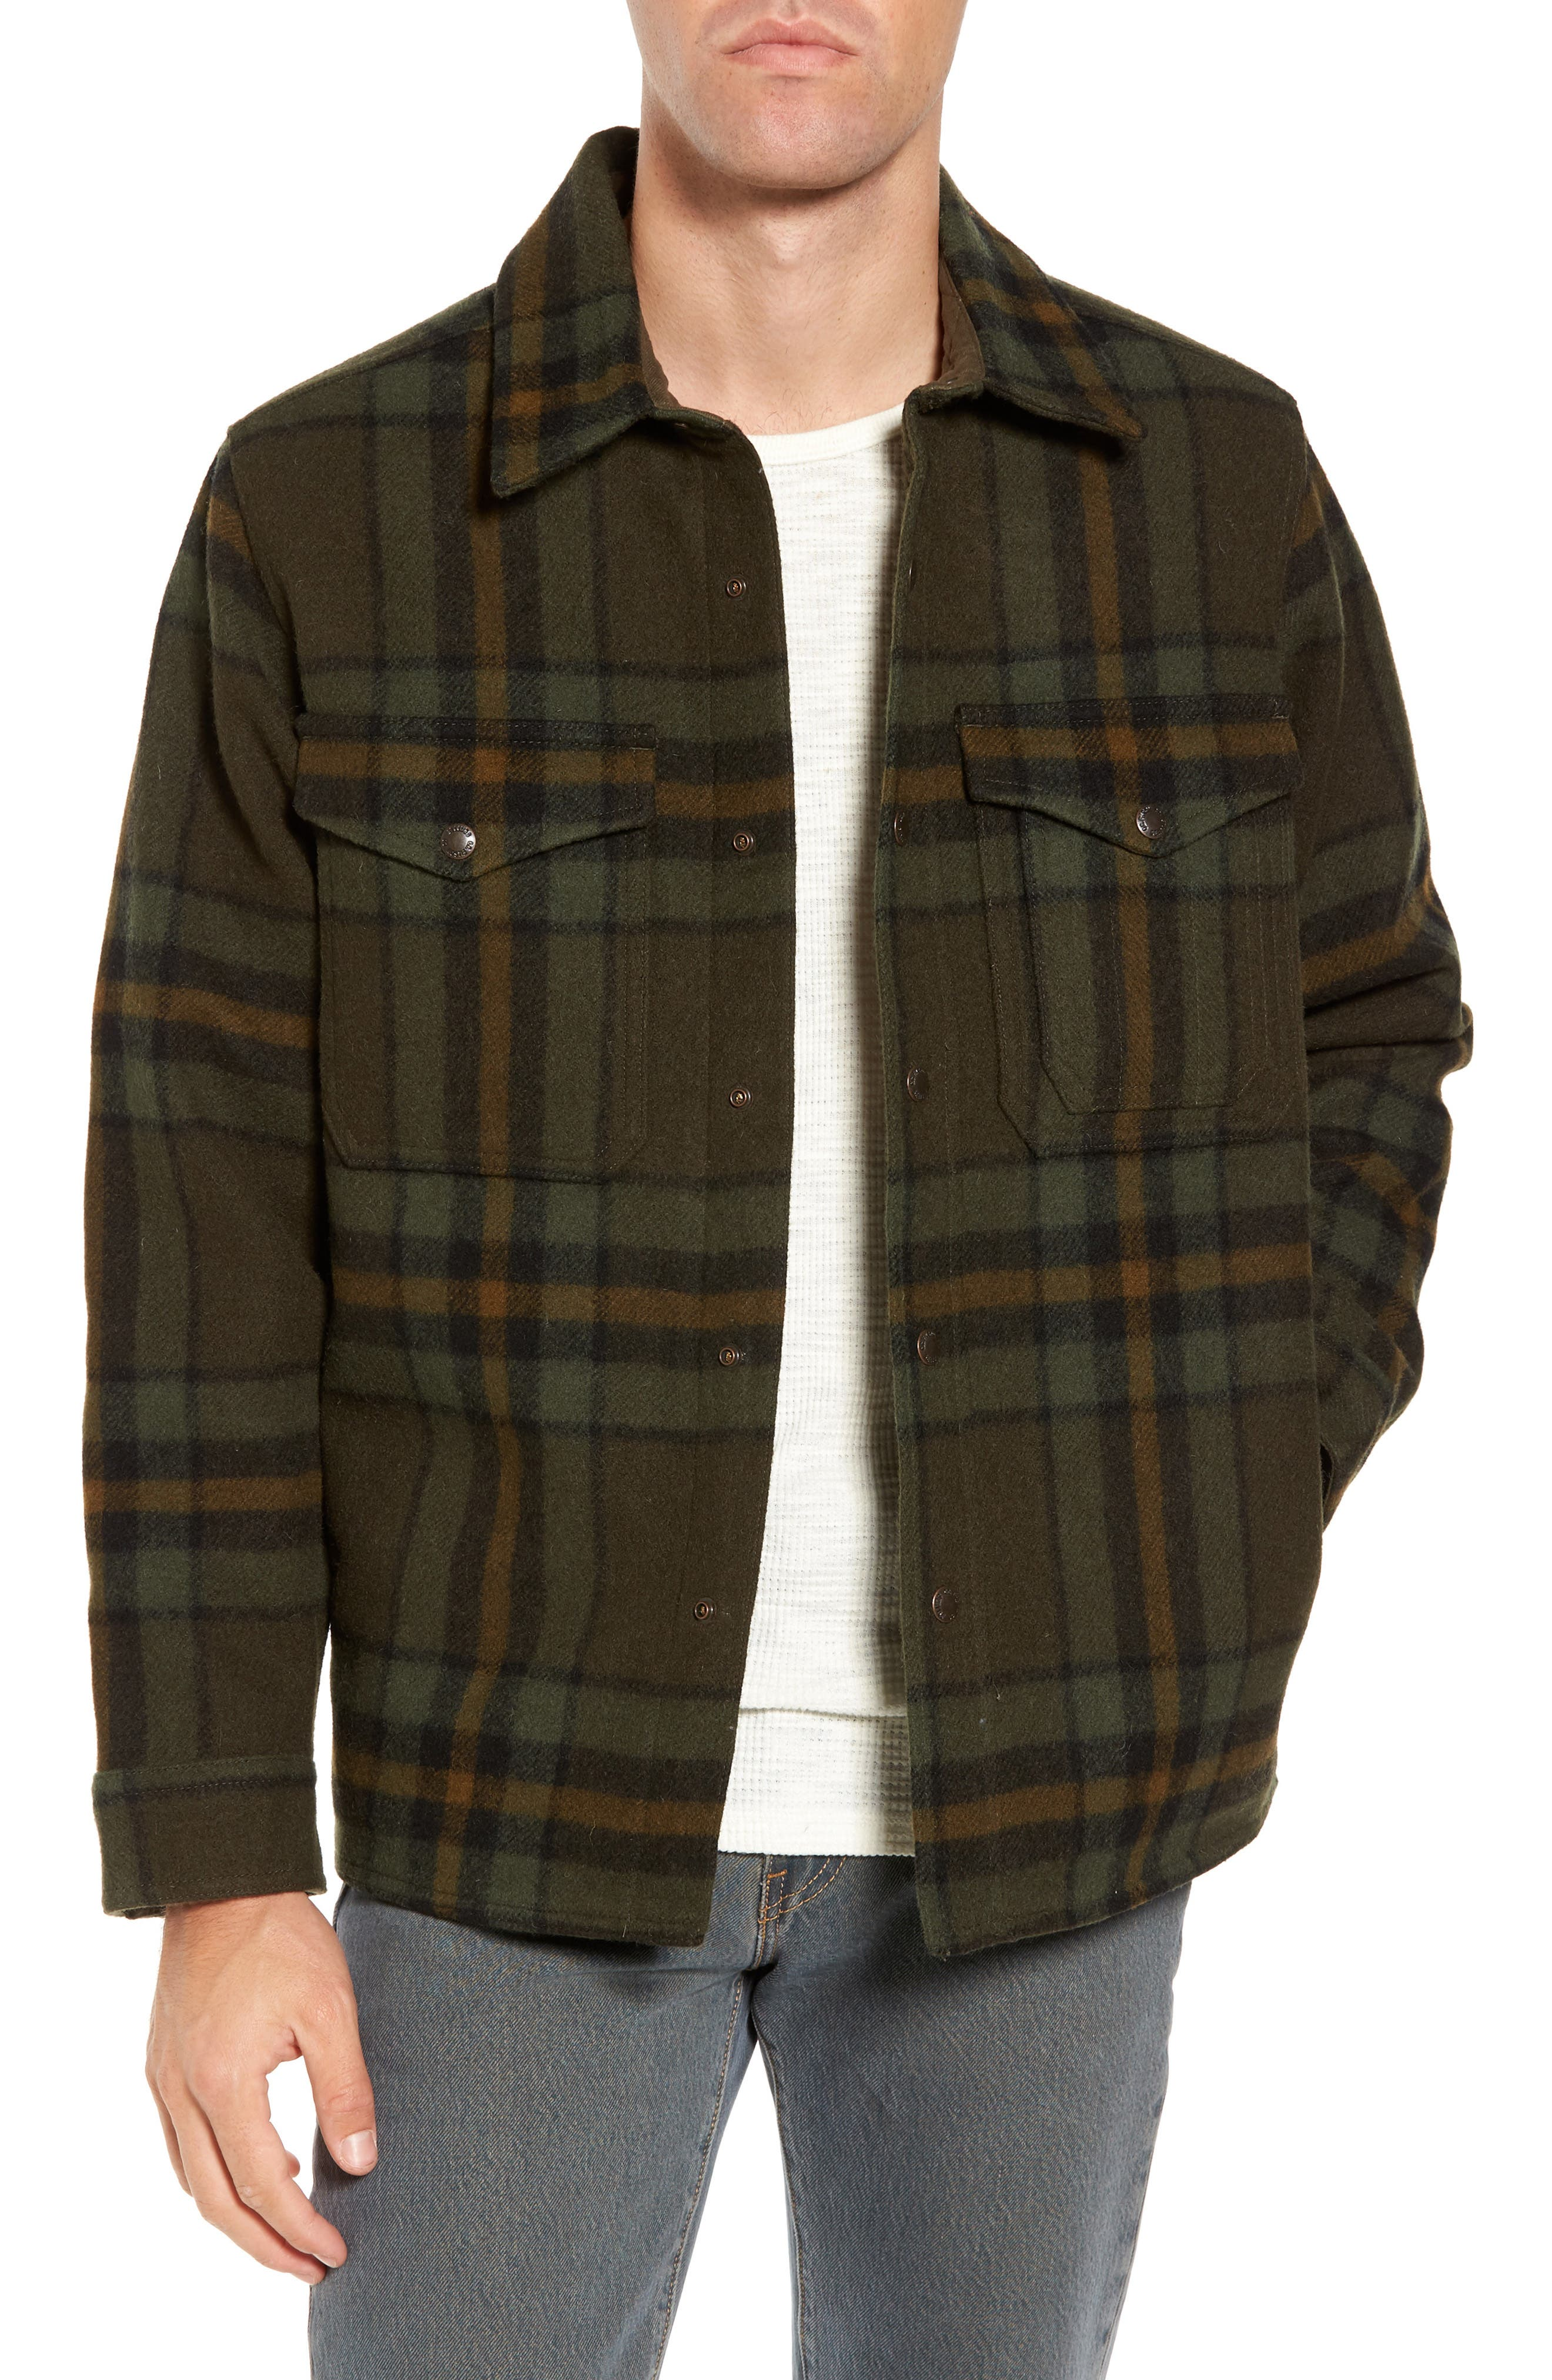 Main Image - Filson 'Macinaw' Plaid Wool Flannel Shirt Jacket